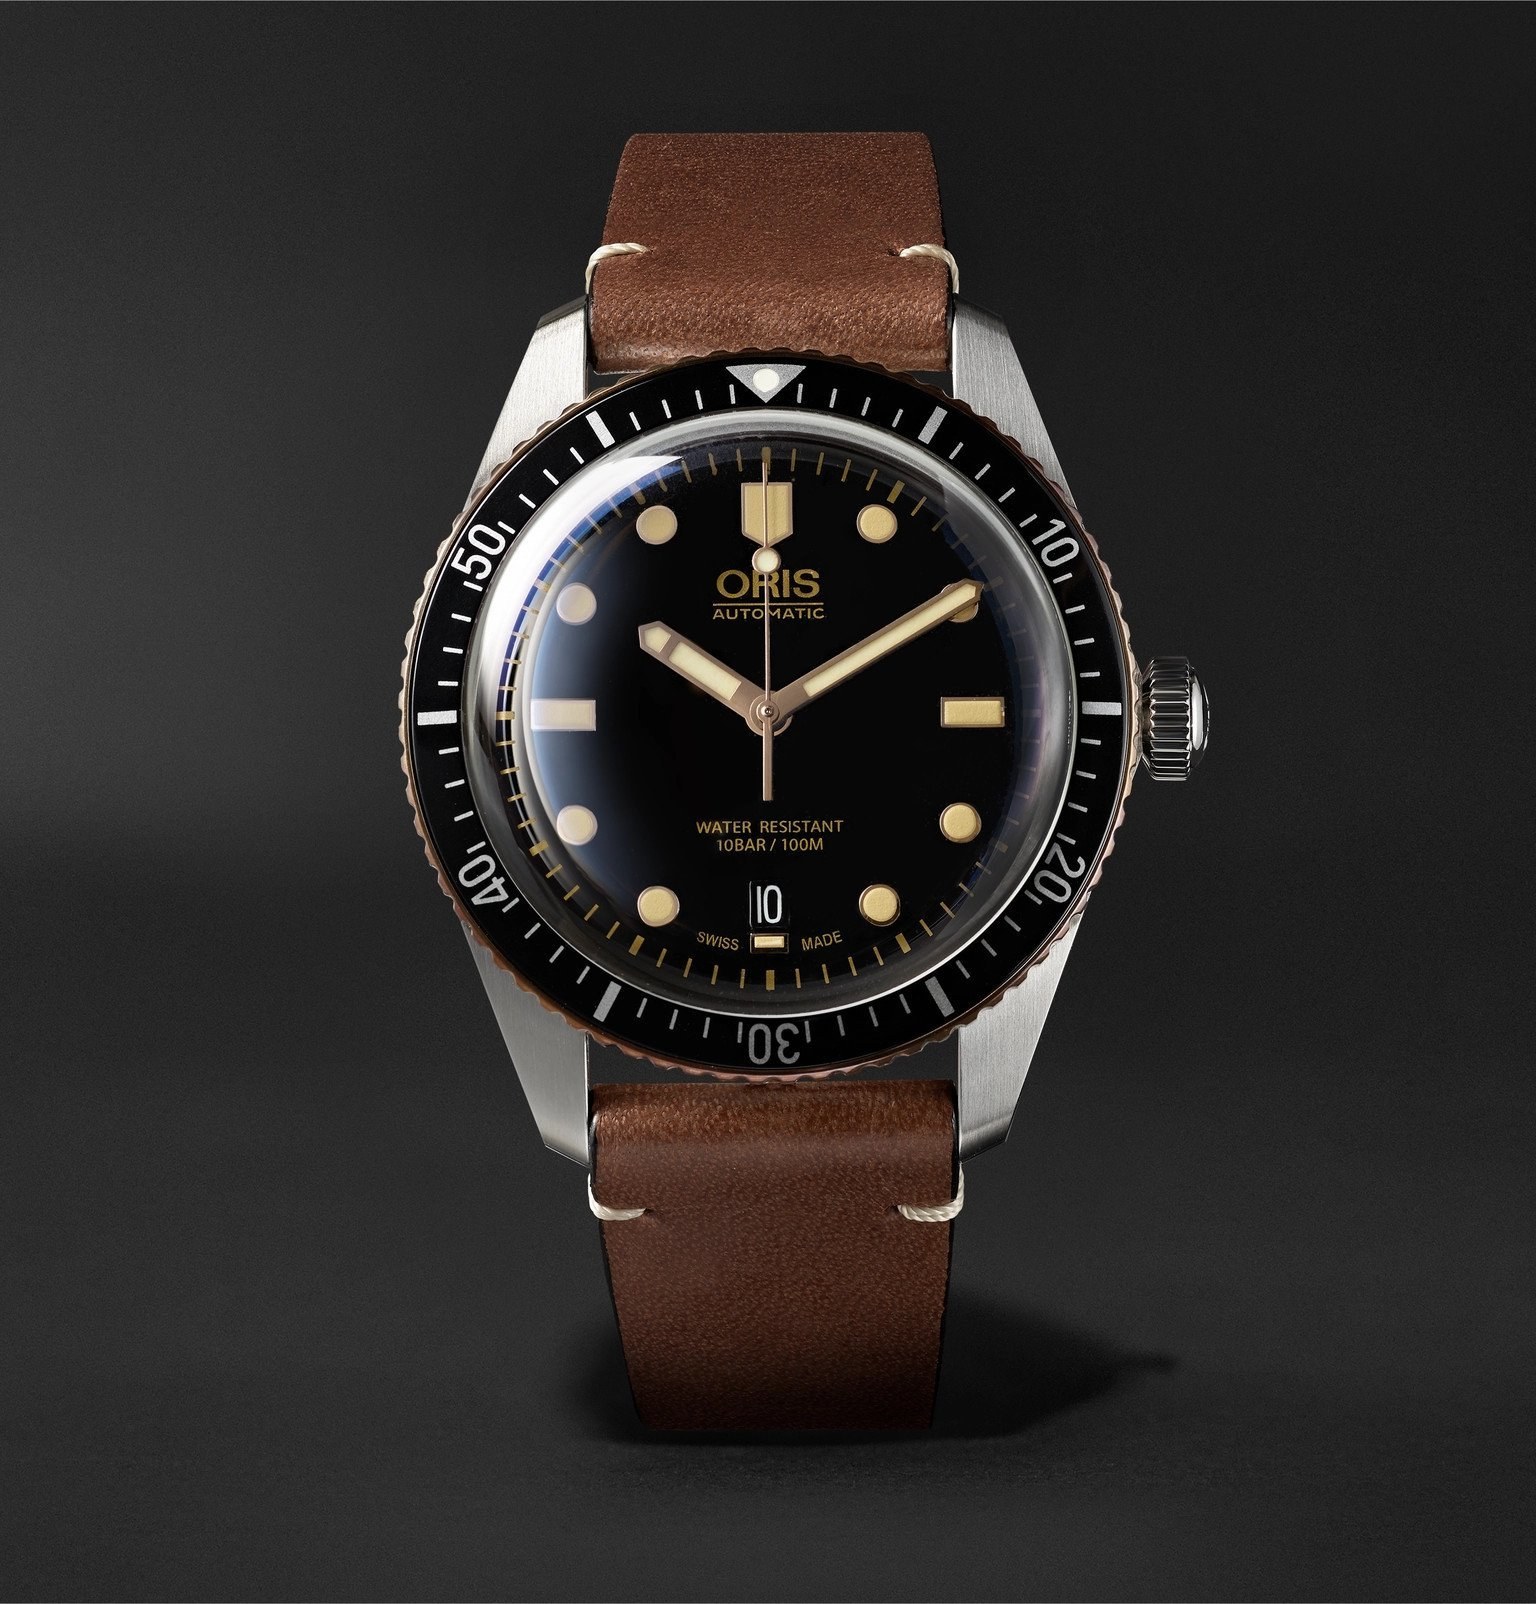 Photo: Oris - Divers Sixty-Five Automatic 42mm Stainless Steel and Leather Watch, Ref. No. 01 733 7707 4354 - Black